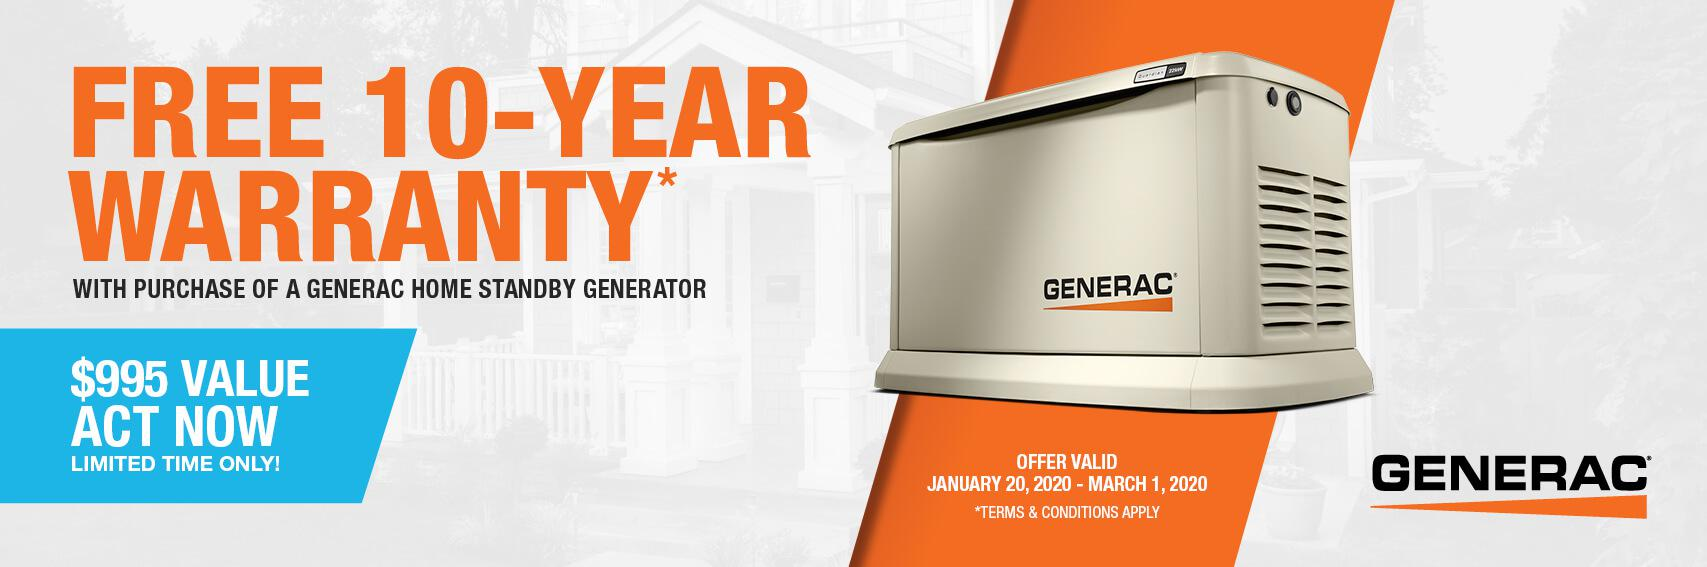 Homestandby Generator Deal | Warranty Offer | Generac Dealer | Onaway, MI